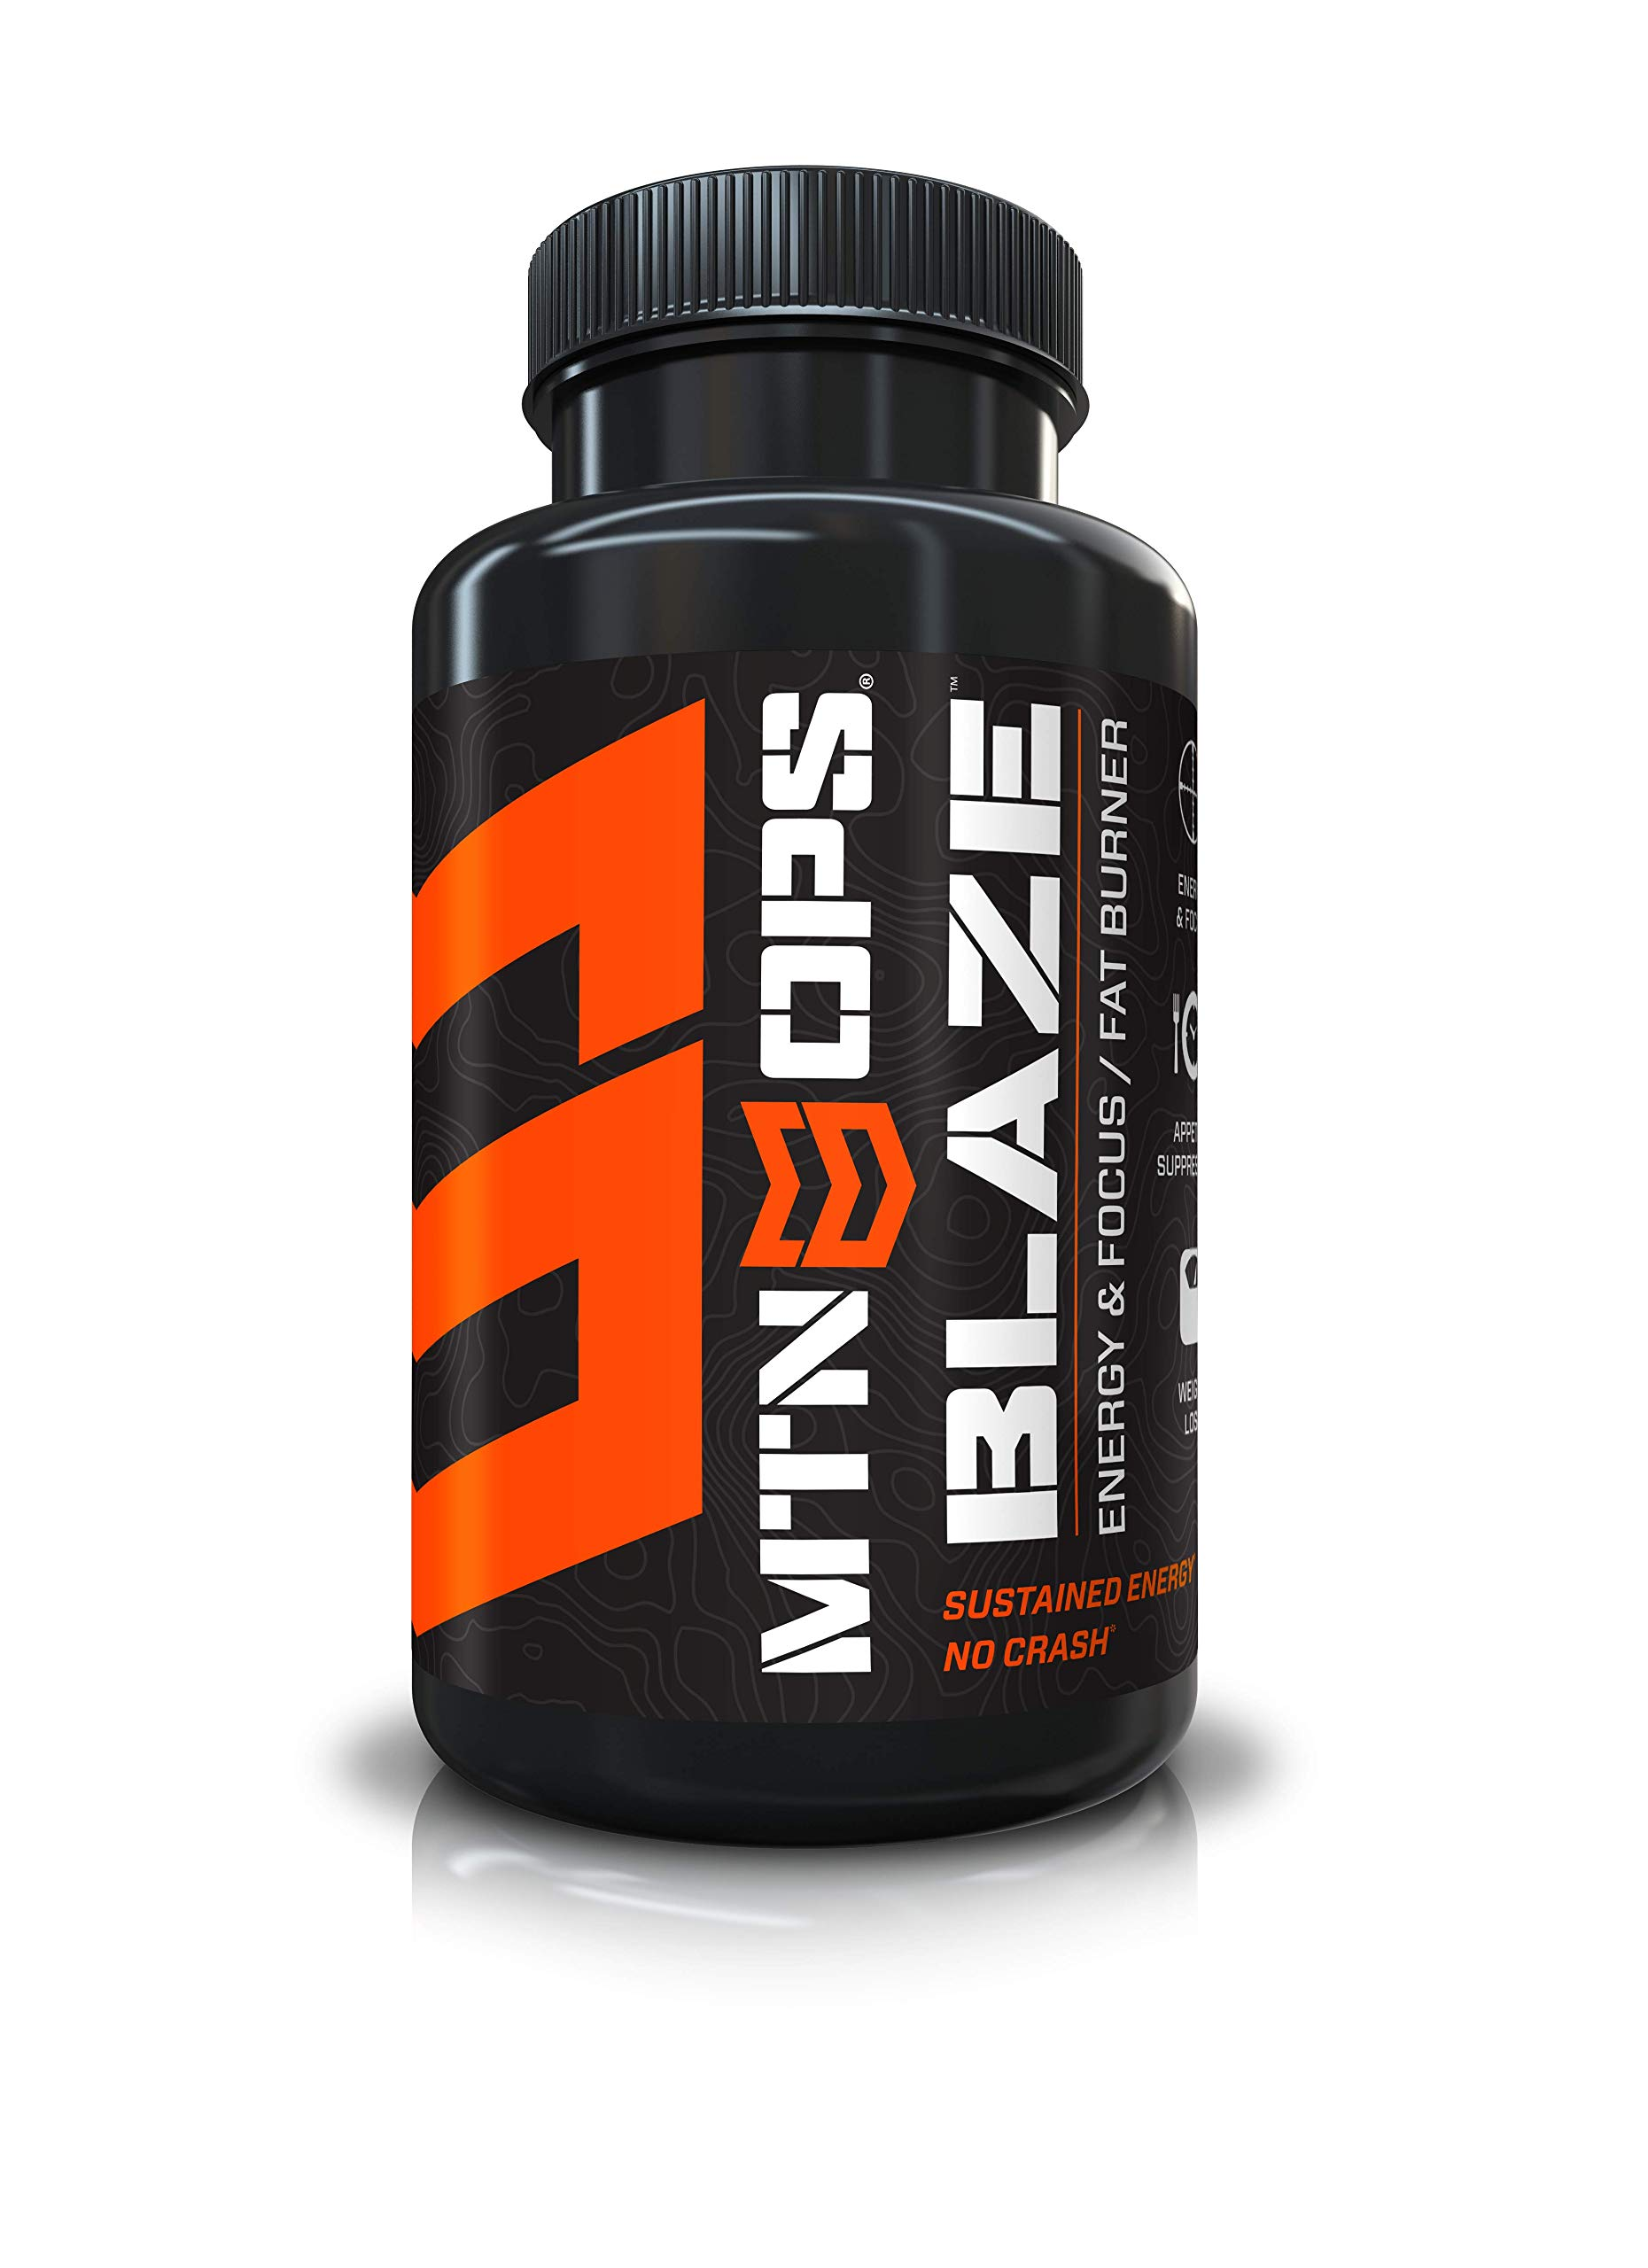 MTN OPS Blaze Energy Pills - 30 Servings by MTN OPS